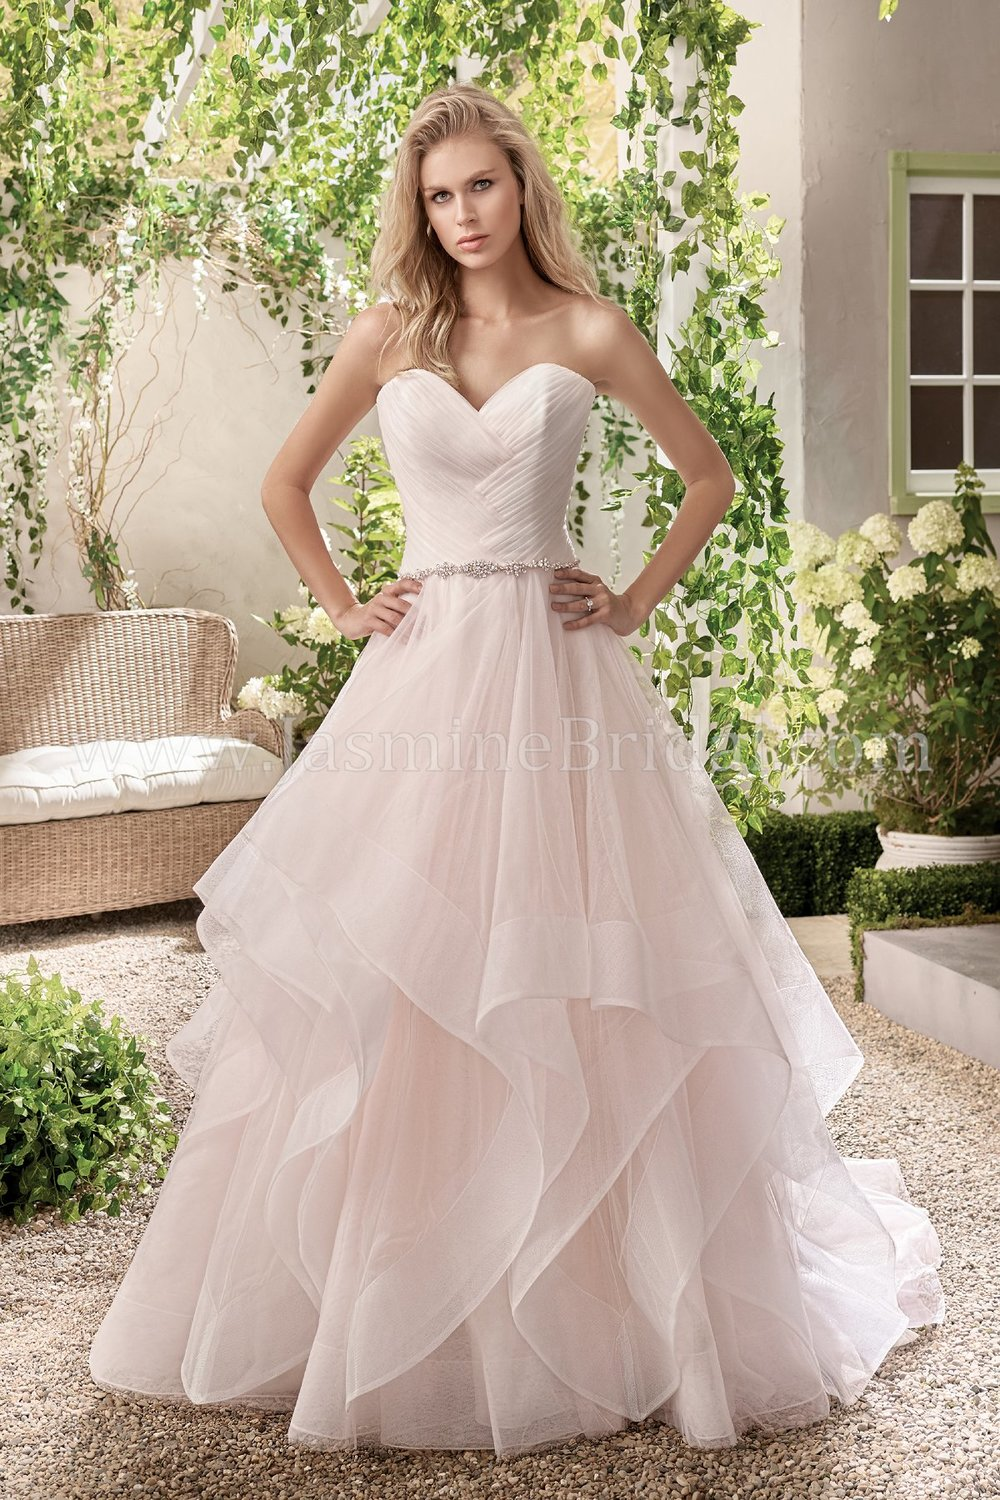 Jasmine Bridal 191004  size 10             Call for Pricing